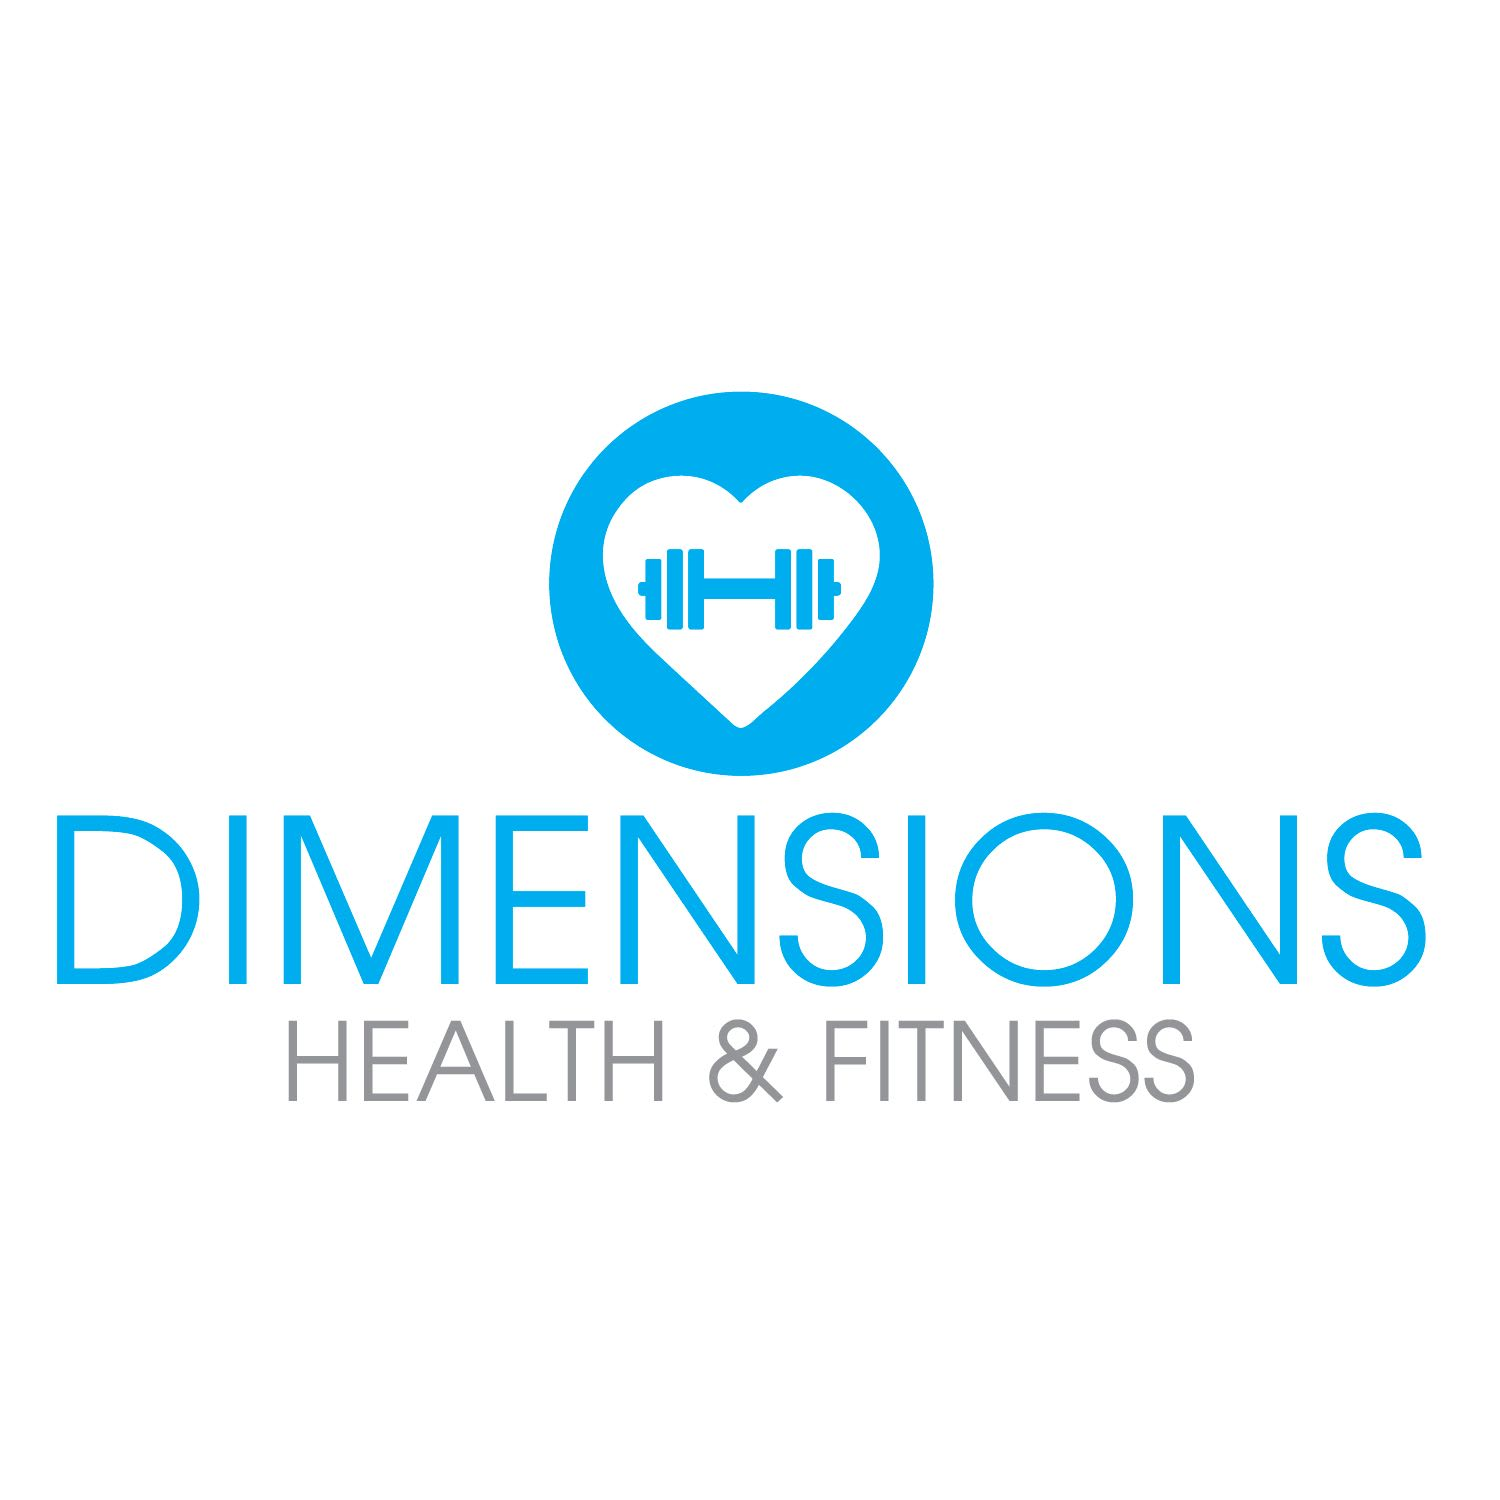 Senior living dimensions wellness program in The Villages